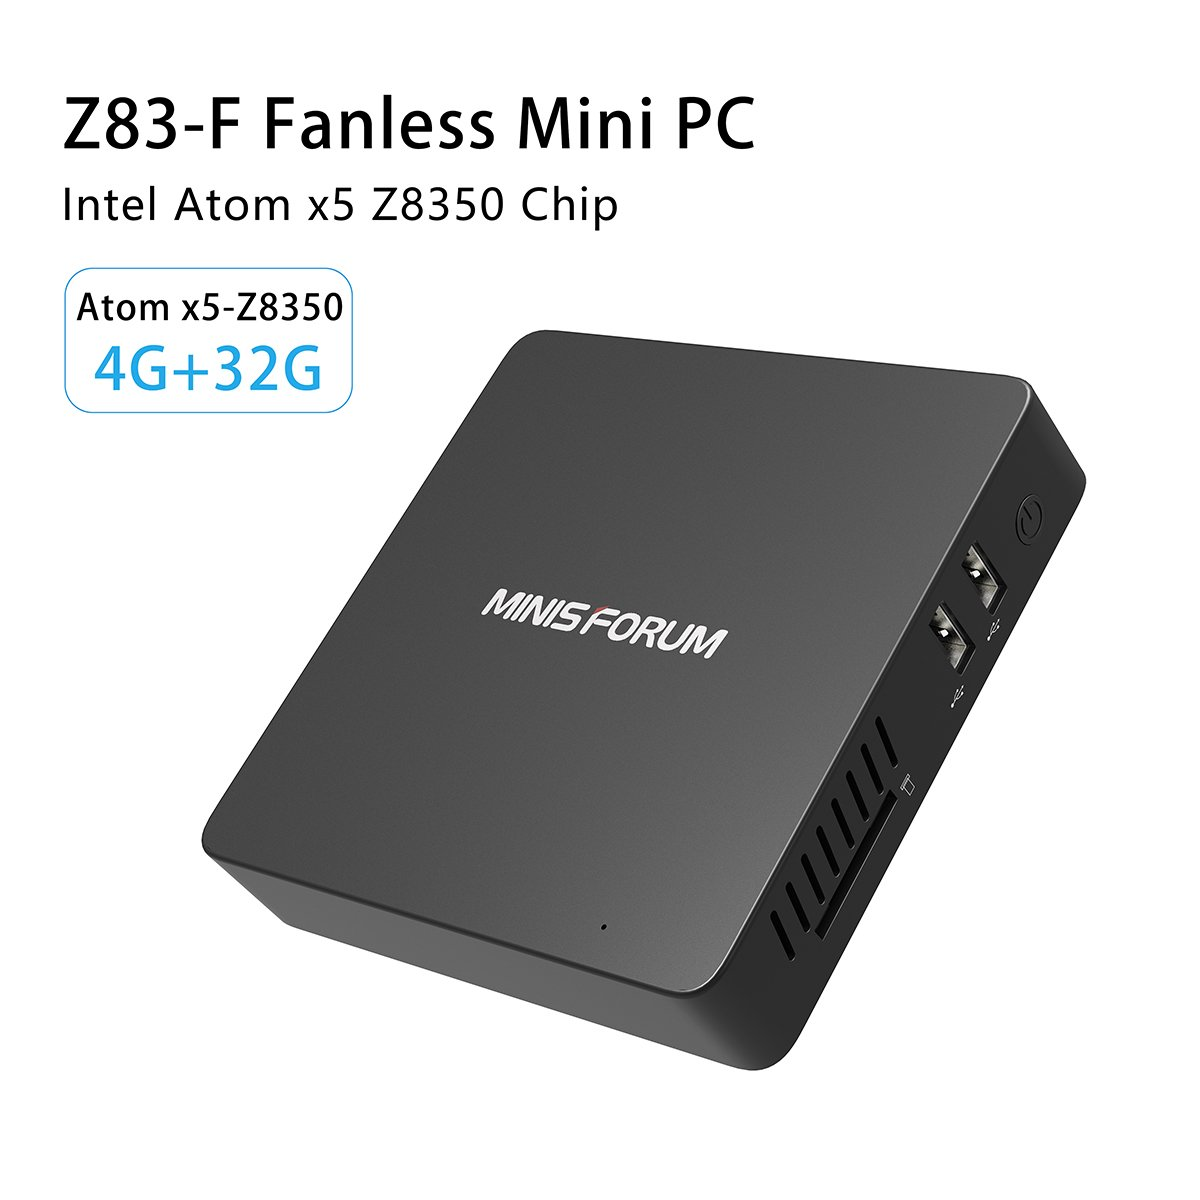 Z83-F Fanless Intel Windows 10 Mini PC Intel Atom x5-Z8350 Desktop, Graphics 400, RAM DDR3L 4GB and ROM 32GB 4K, Ultra HD 1000Mbps Lan 2.4G/5.8G WiFi and Dual Screen Display BT 4.0 Plater AZW-BT3PR0-PLA